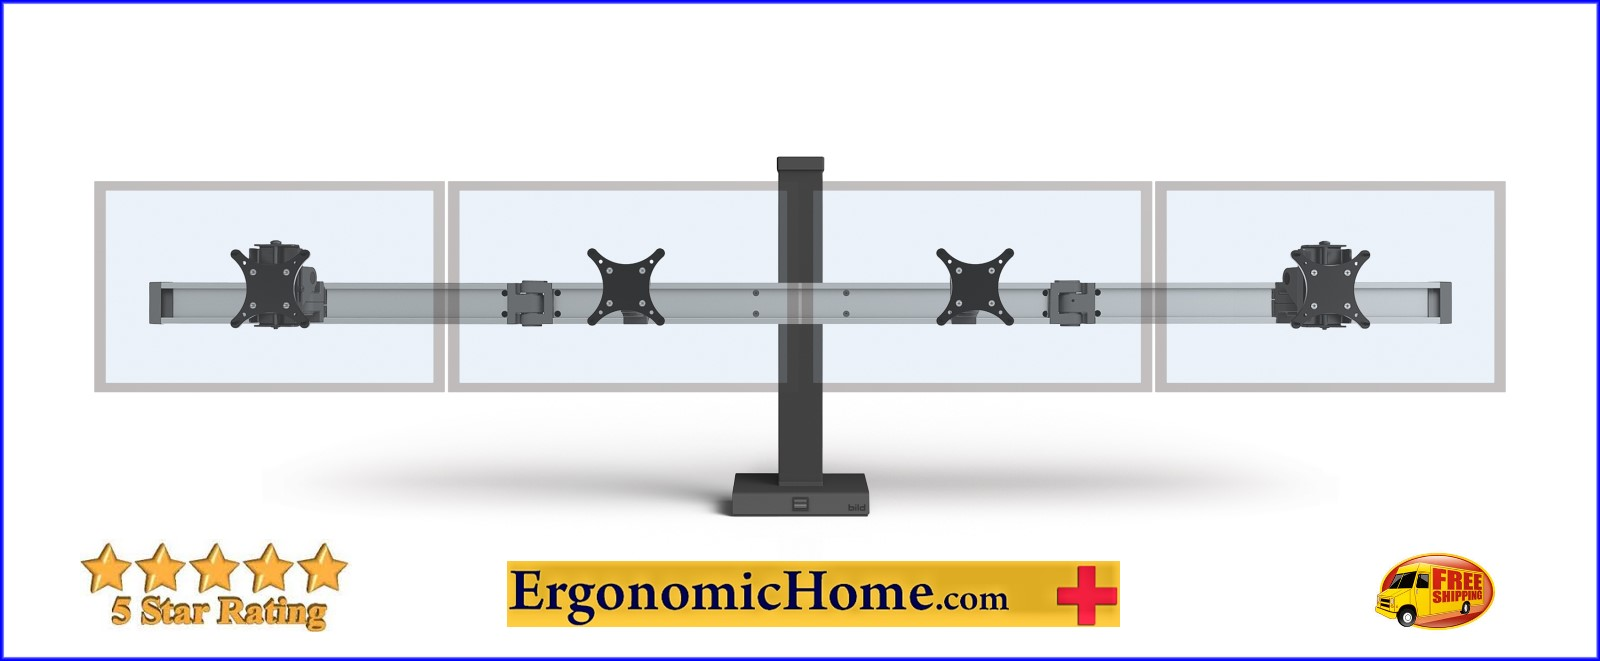 </b></font>QUAD MONITOR STAND  #BILD-4-CM. MOUNTS 4 MONITORS SIDE BY SIDE W/STATIC COLUMN</font>. </b></font></b>